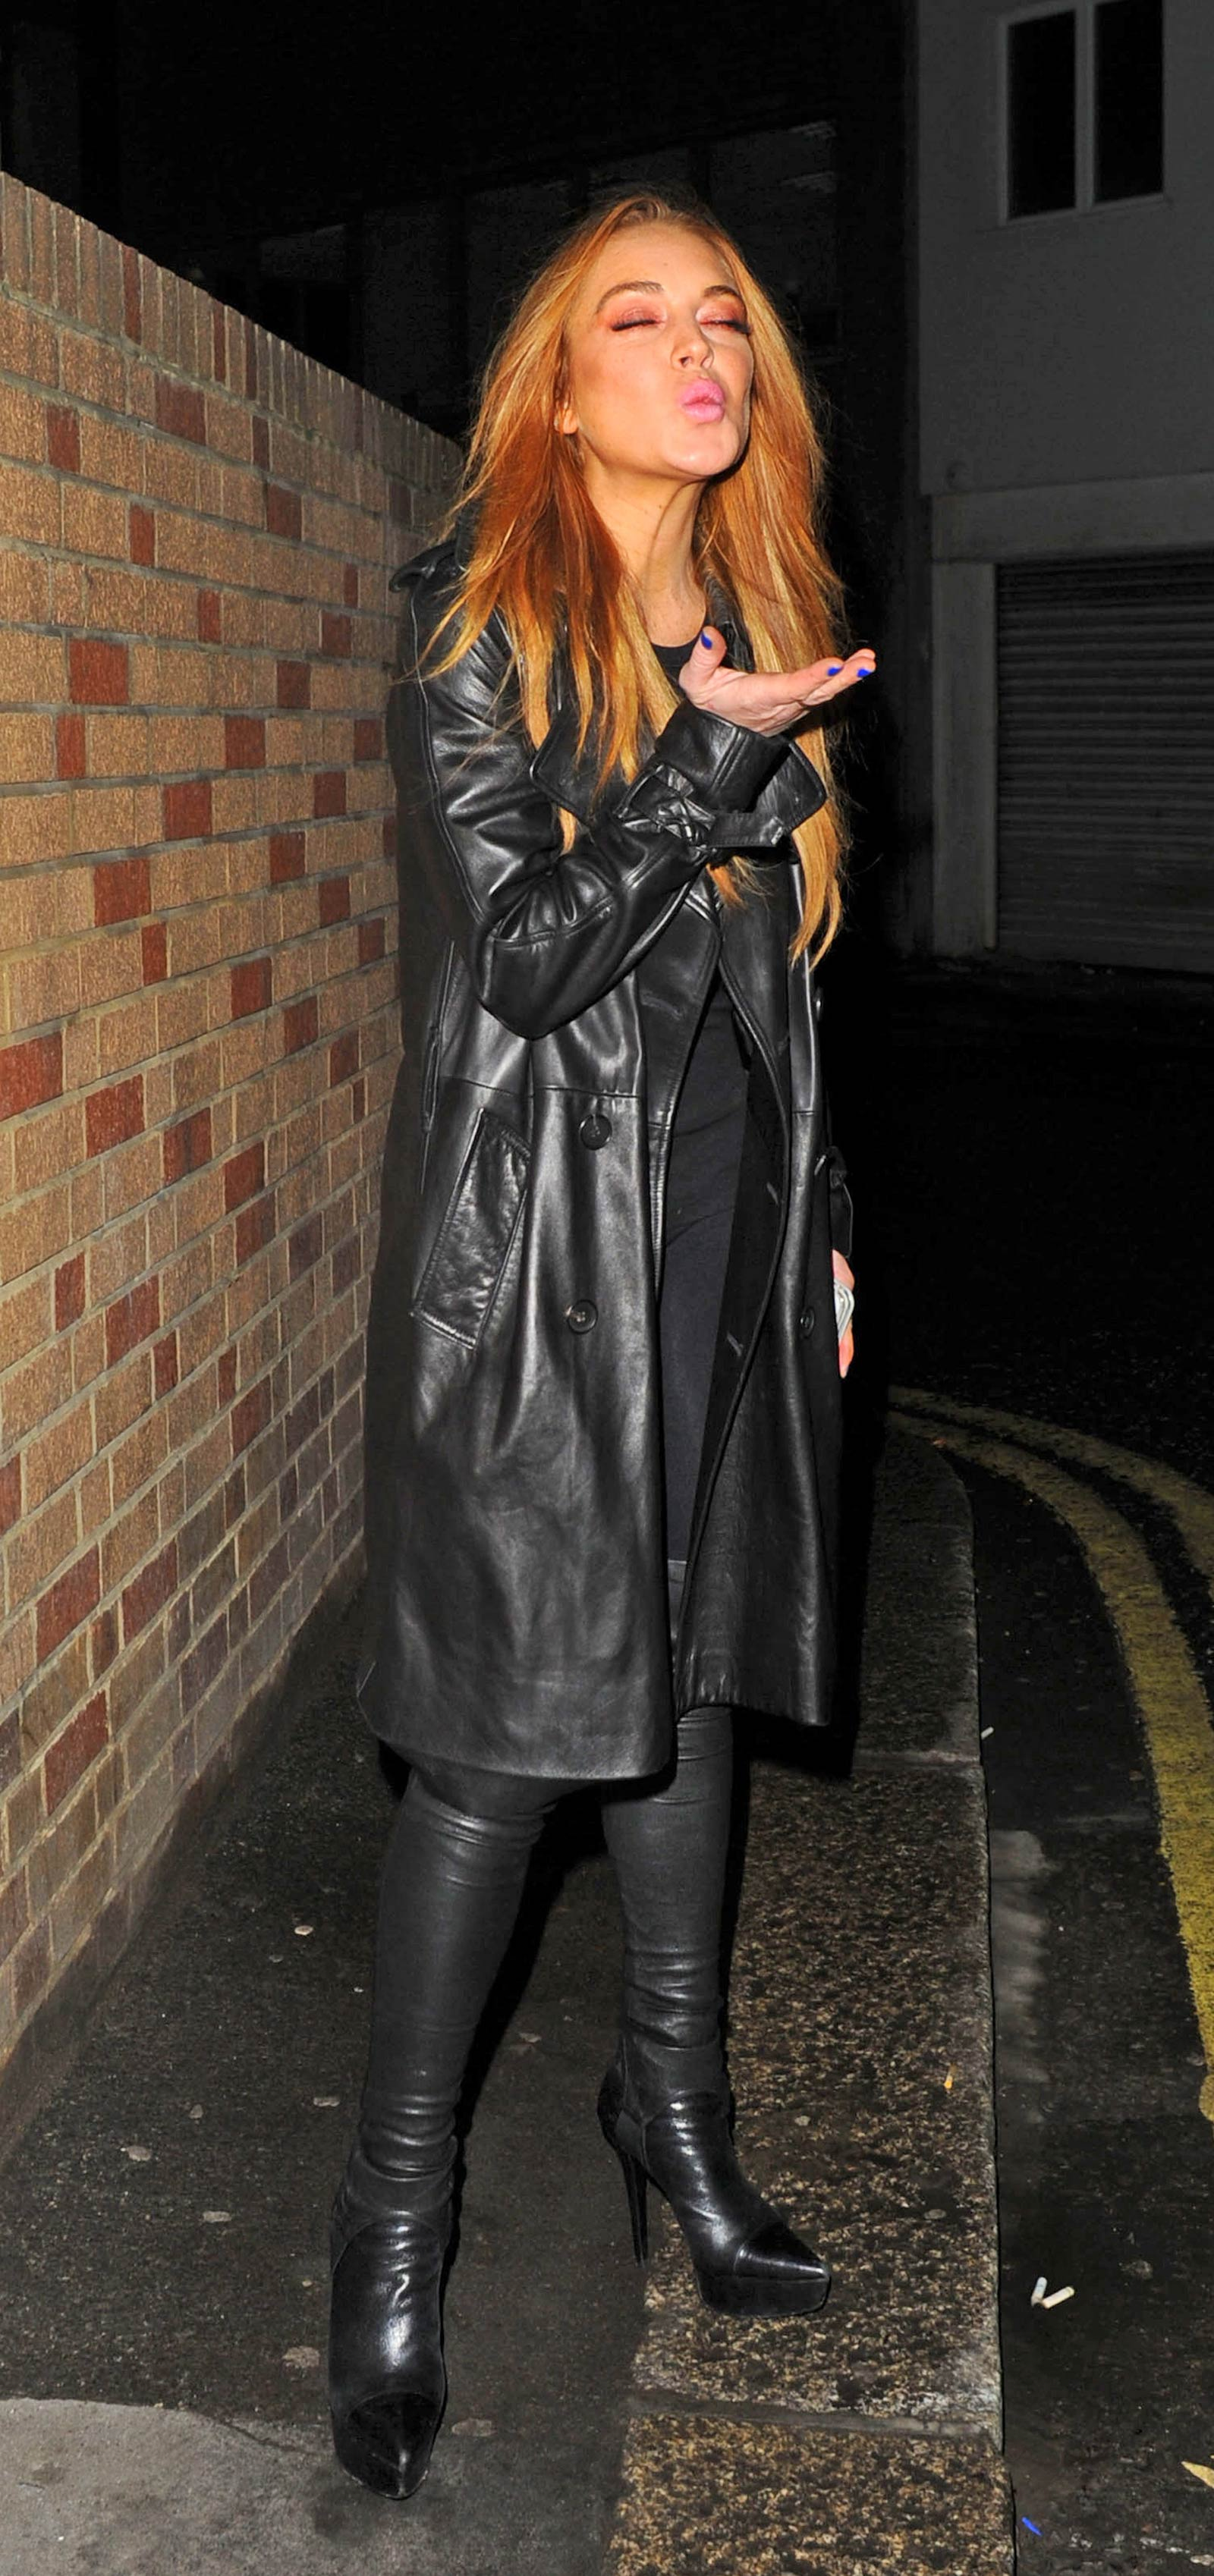 Lindsay Lohan out in London